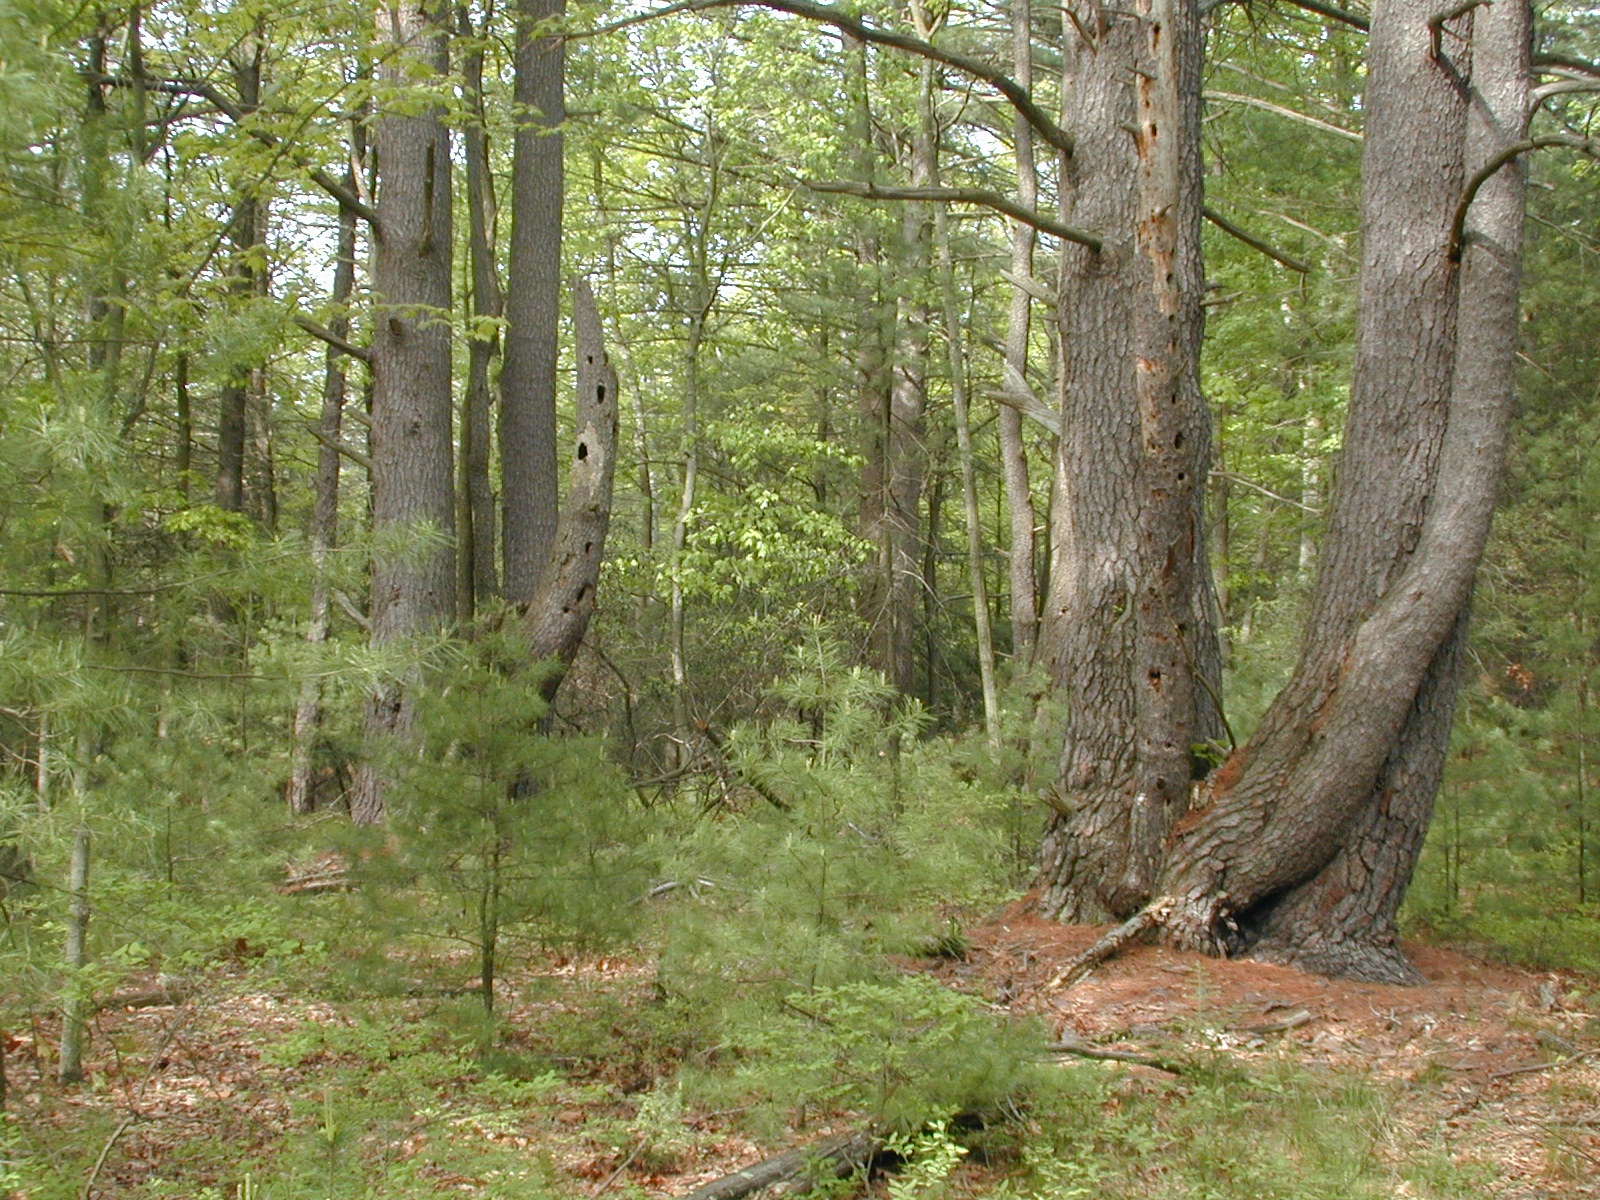 Grove of large fir trees